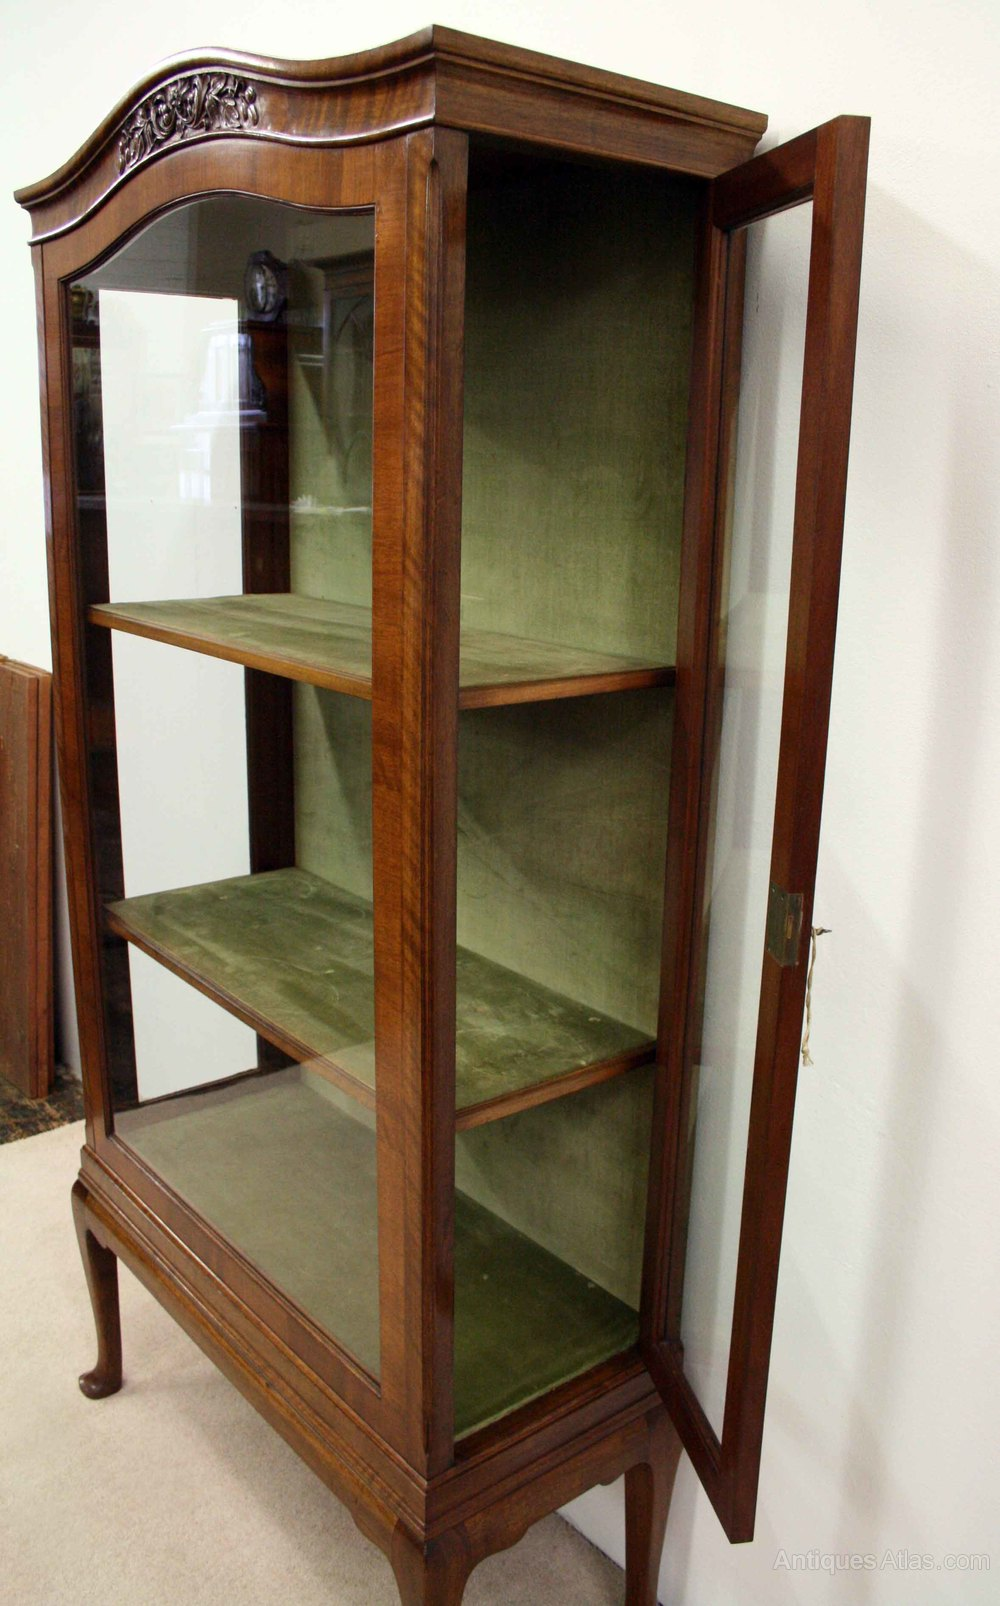 Whytock reid walnut display cabinet antiques atlas for Antique display cabinet